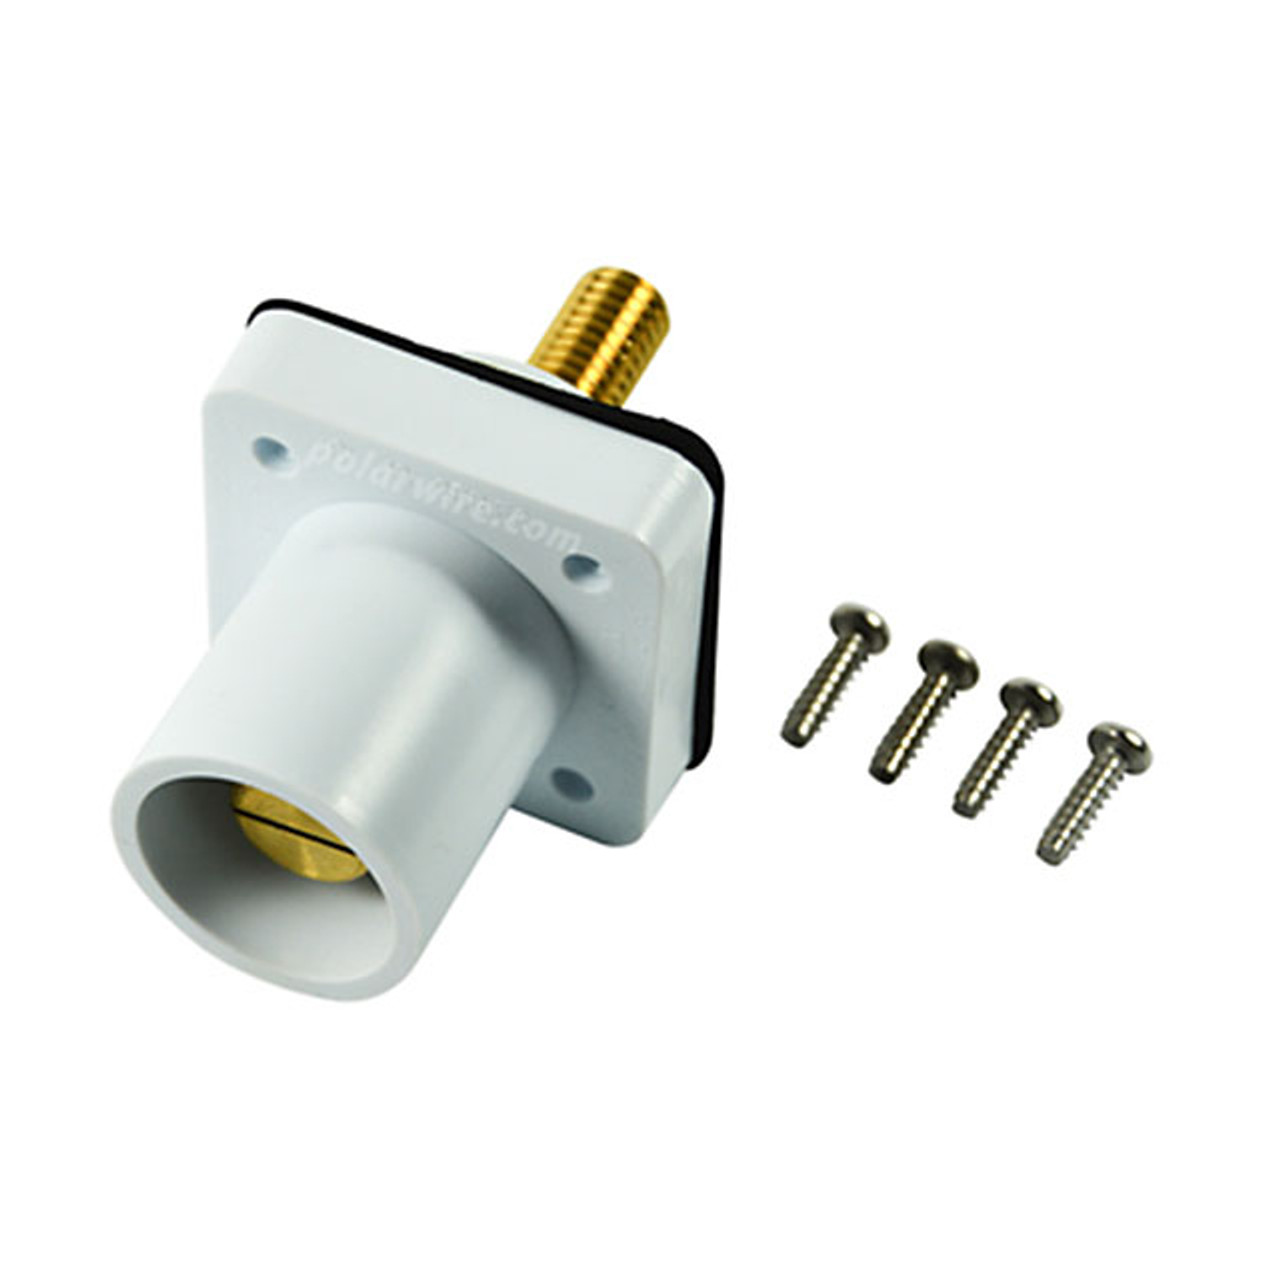 Marinco white 400A CL 16 Series male single pin panel mount cam lock connector with threaded stud for 2/0-4/0 AWG cable